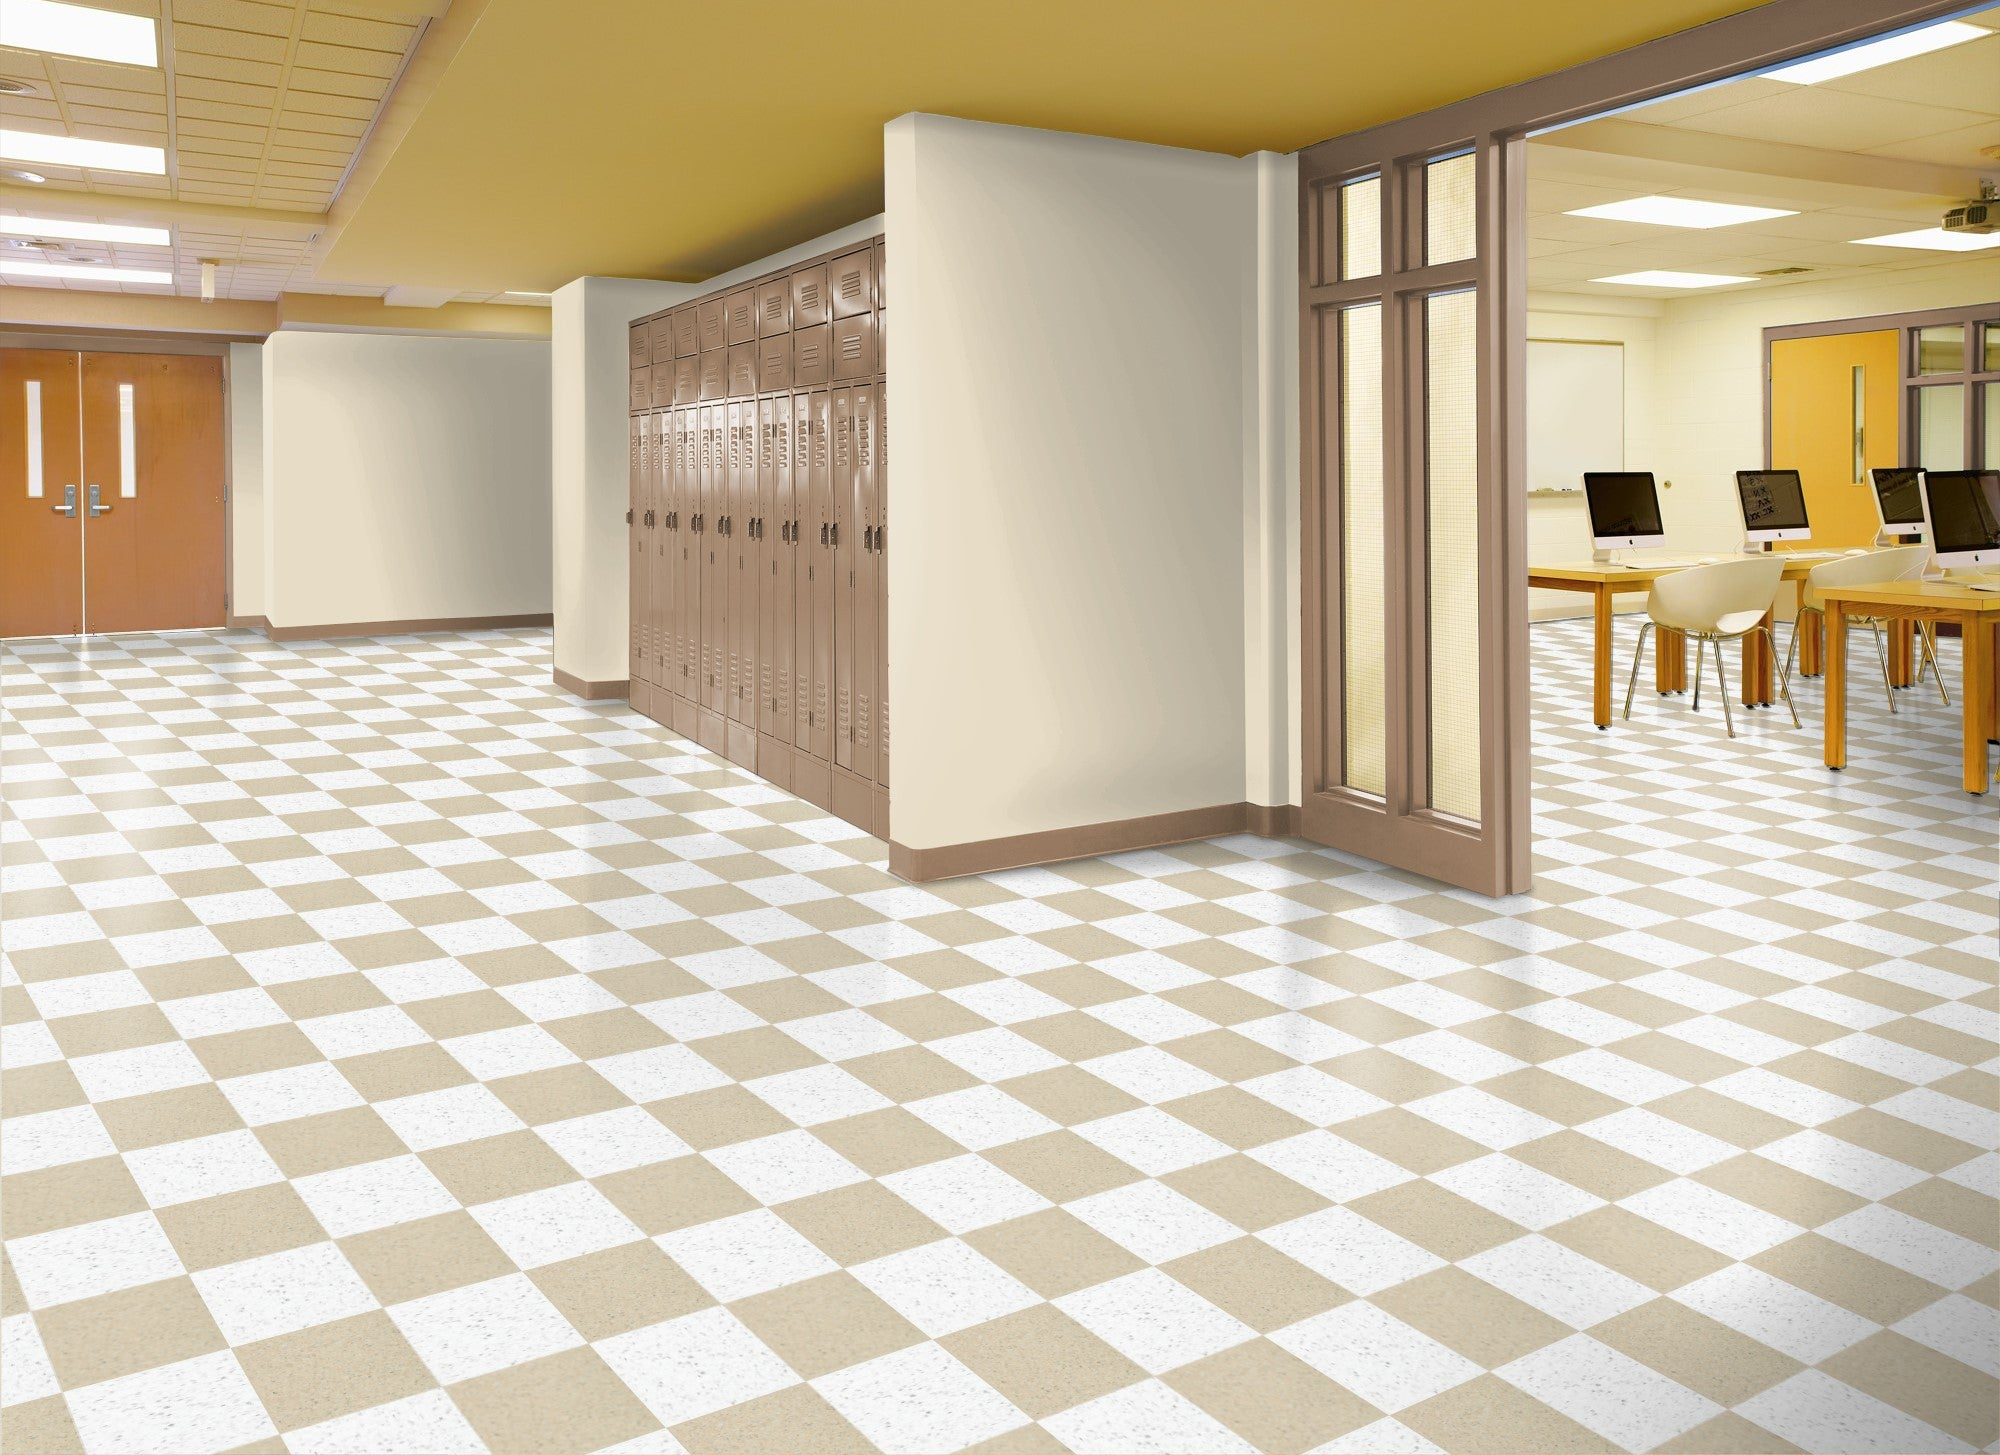 Educational Floor Ideas School Flooring Classroom Cafeteria Labs